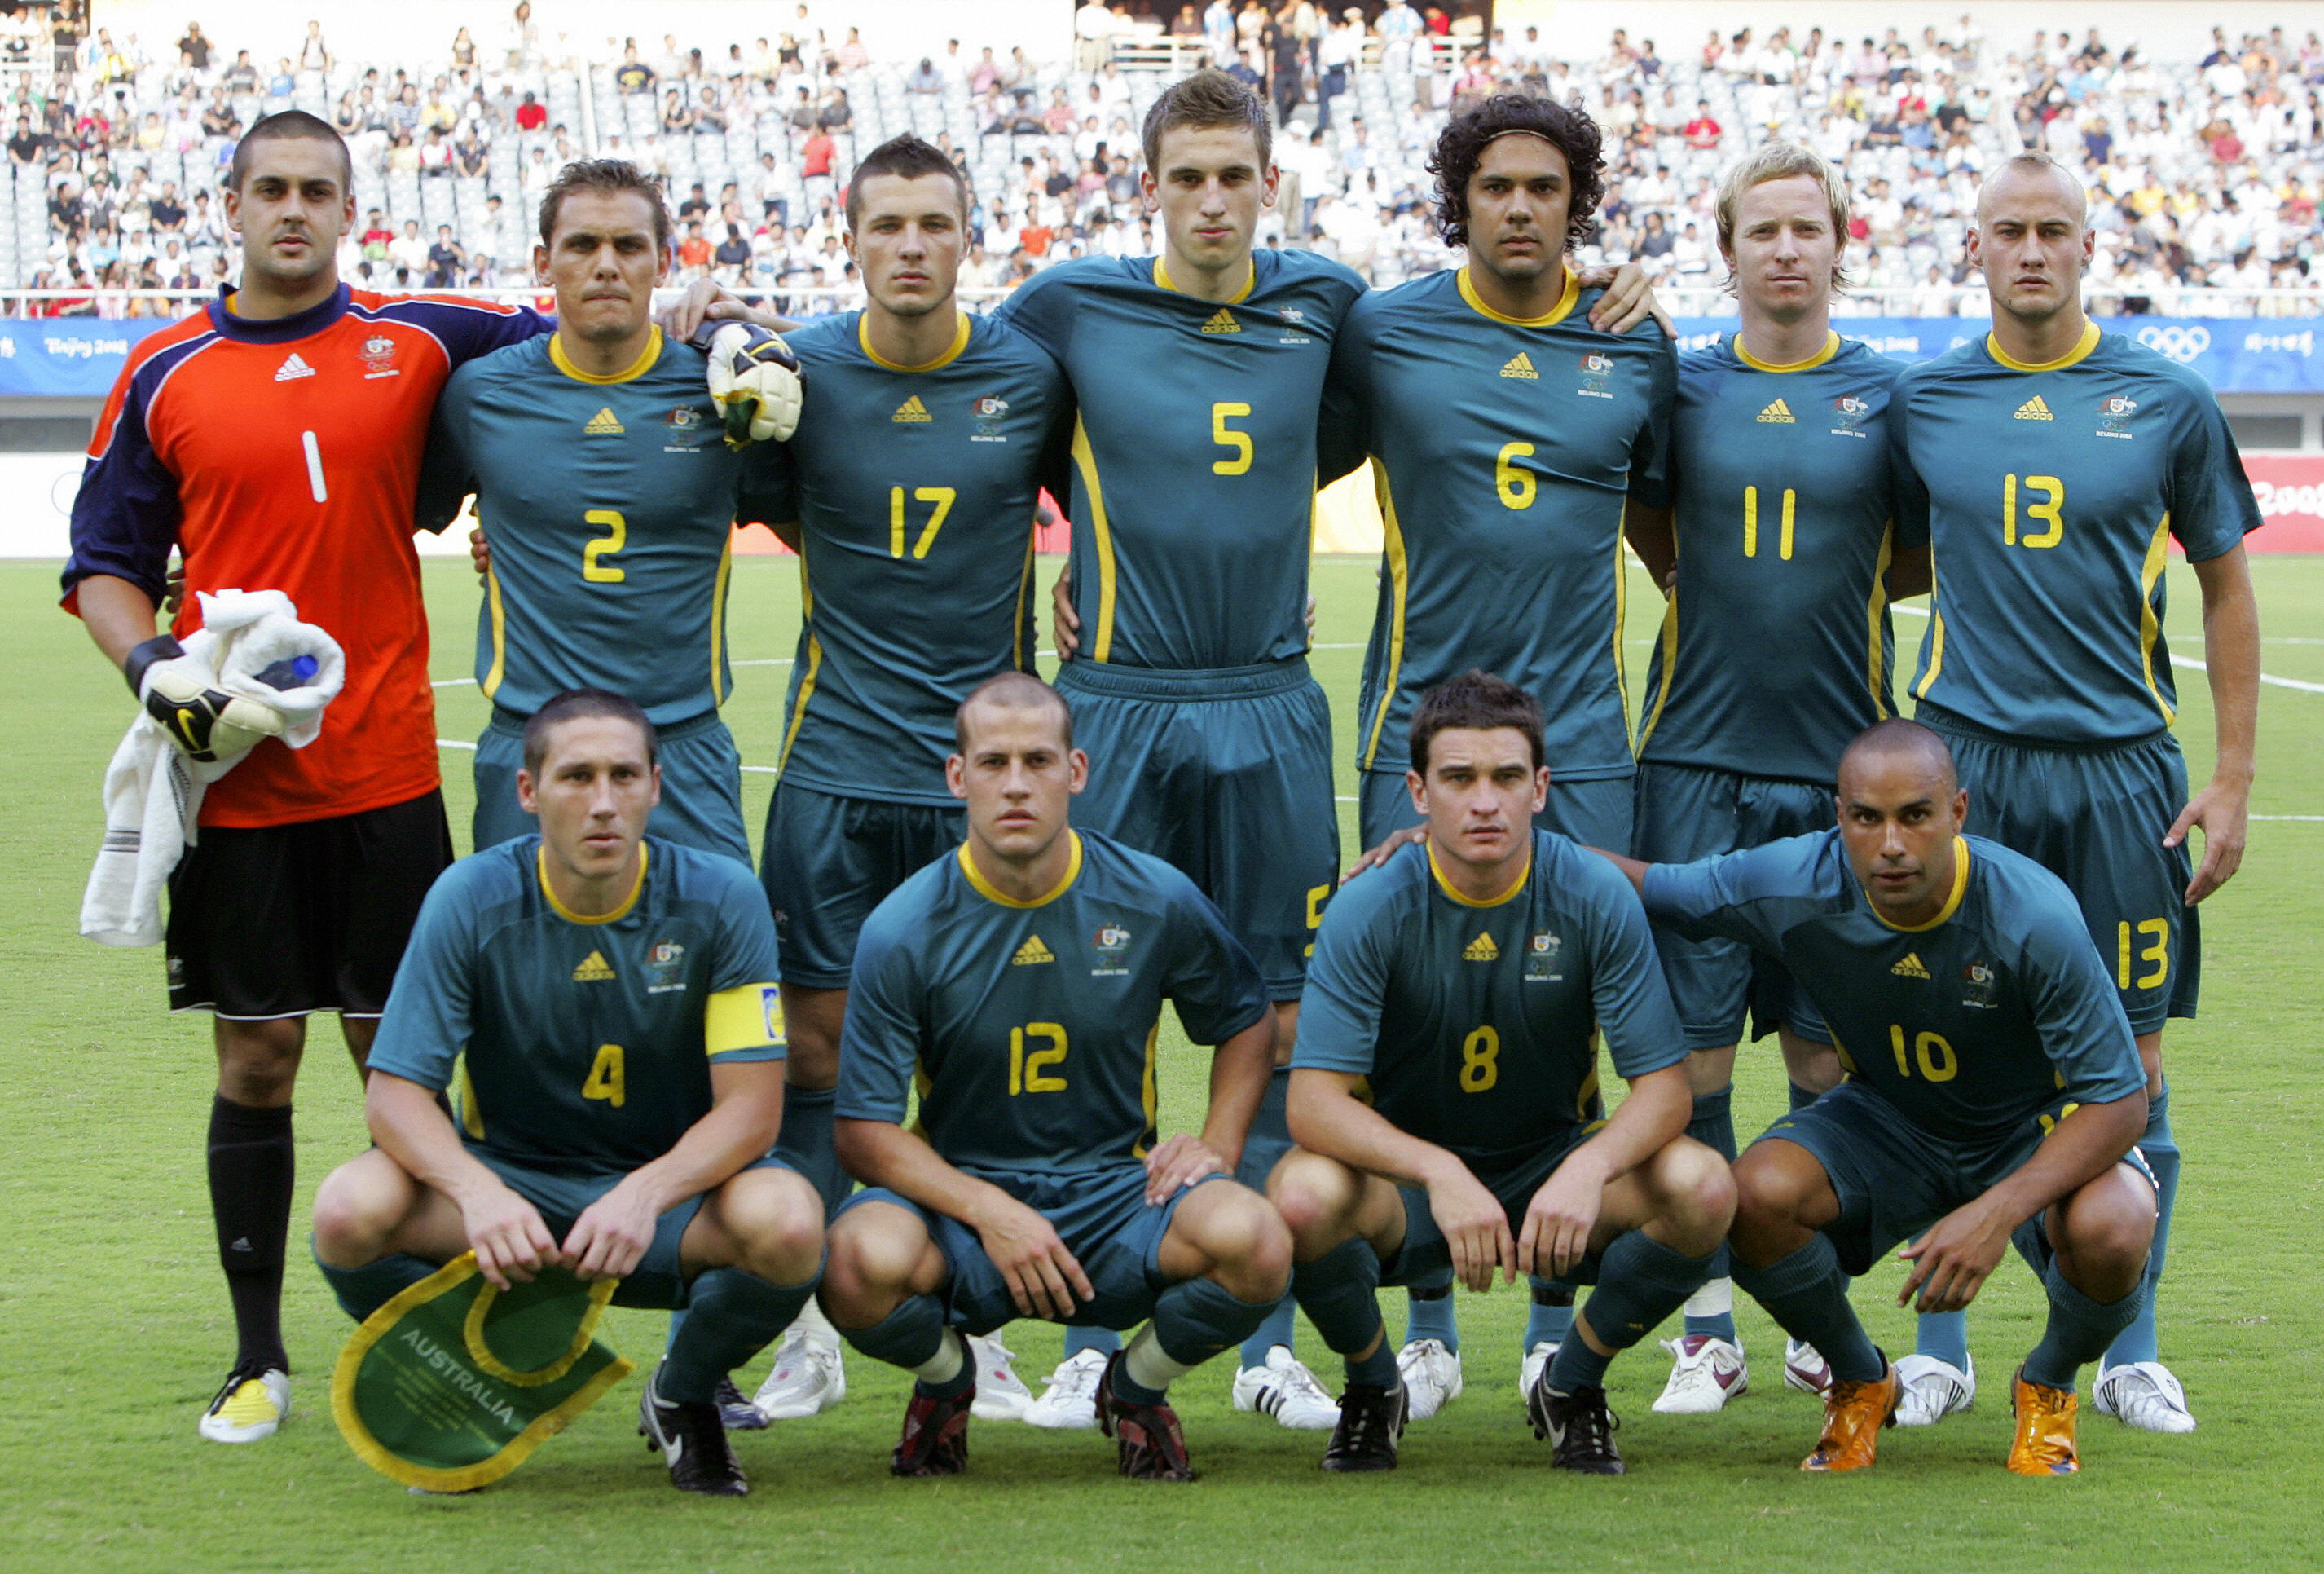 (From L-top row) Players of Australia Ad